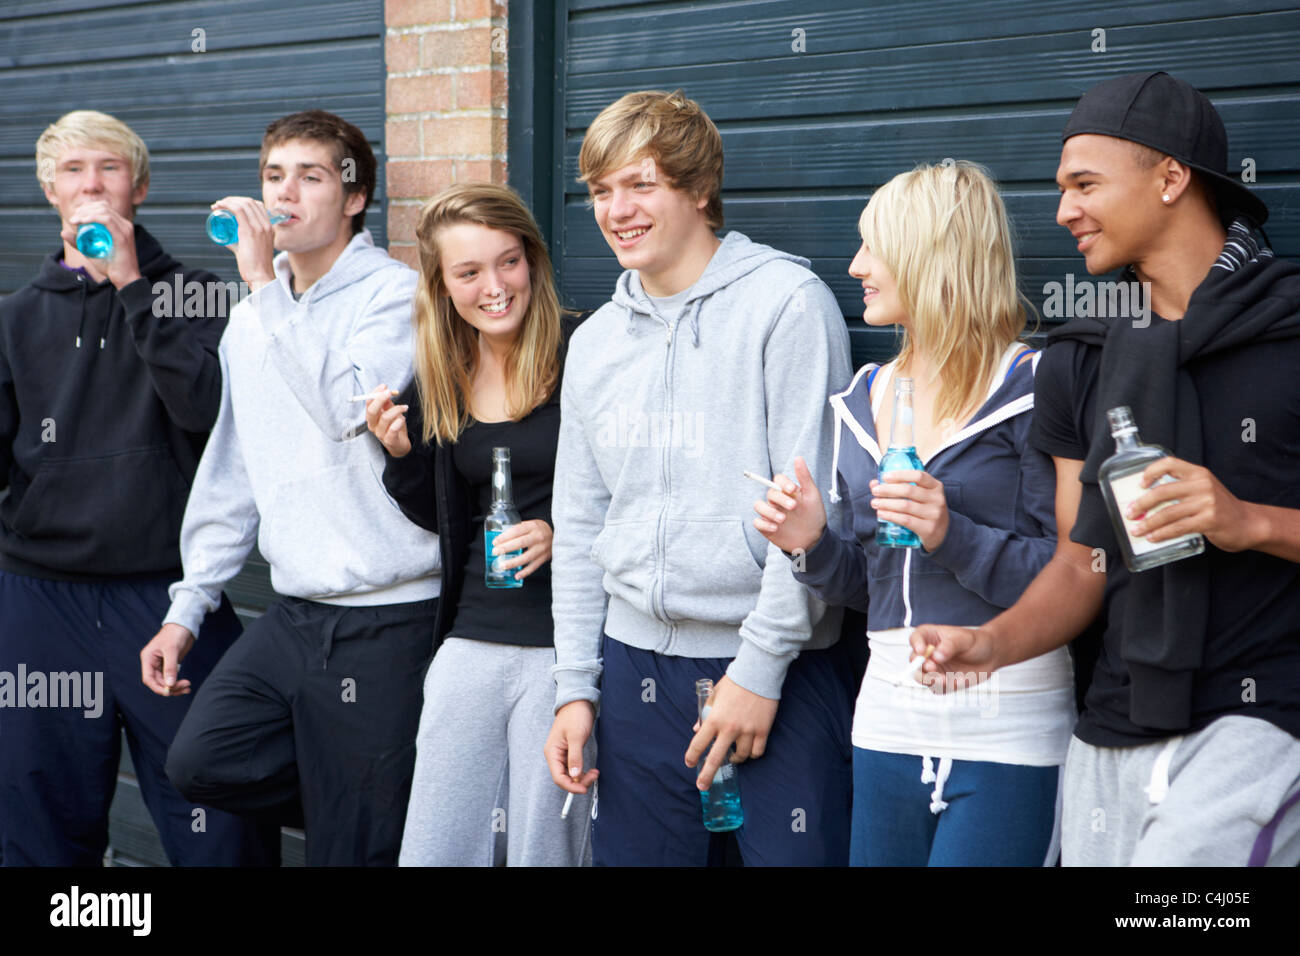 Group Of Teenagers Hanging Out Together Outside Drinking - Stock Image